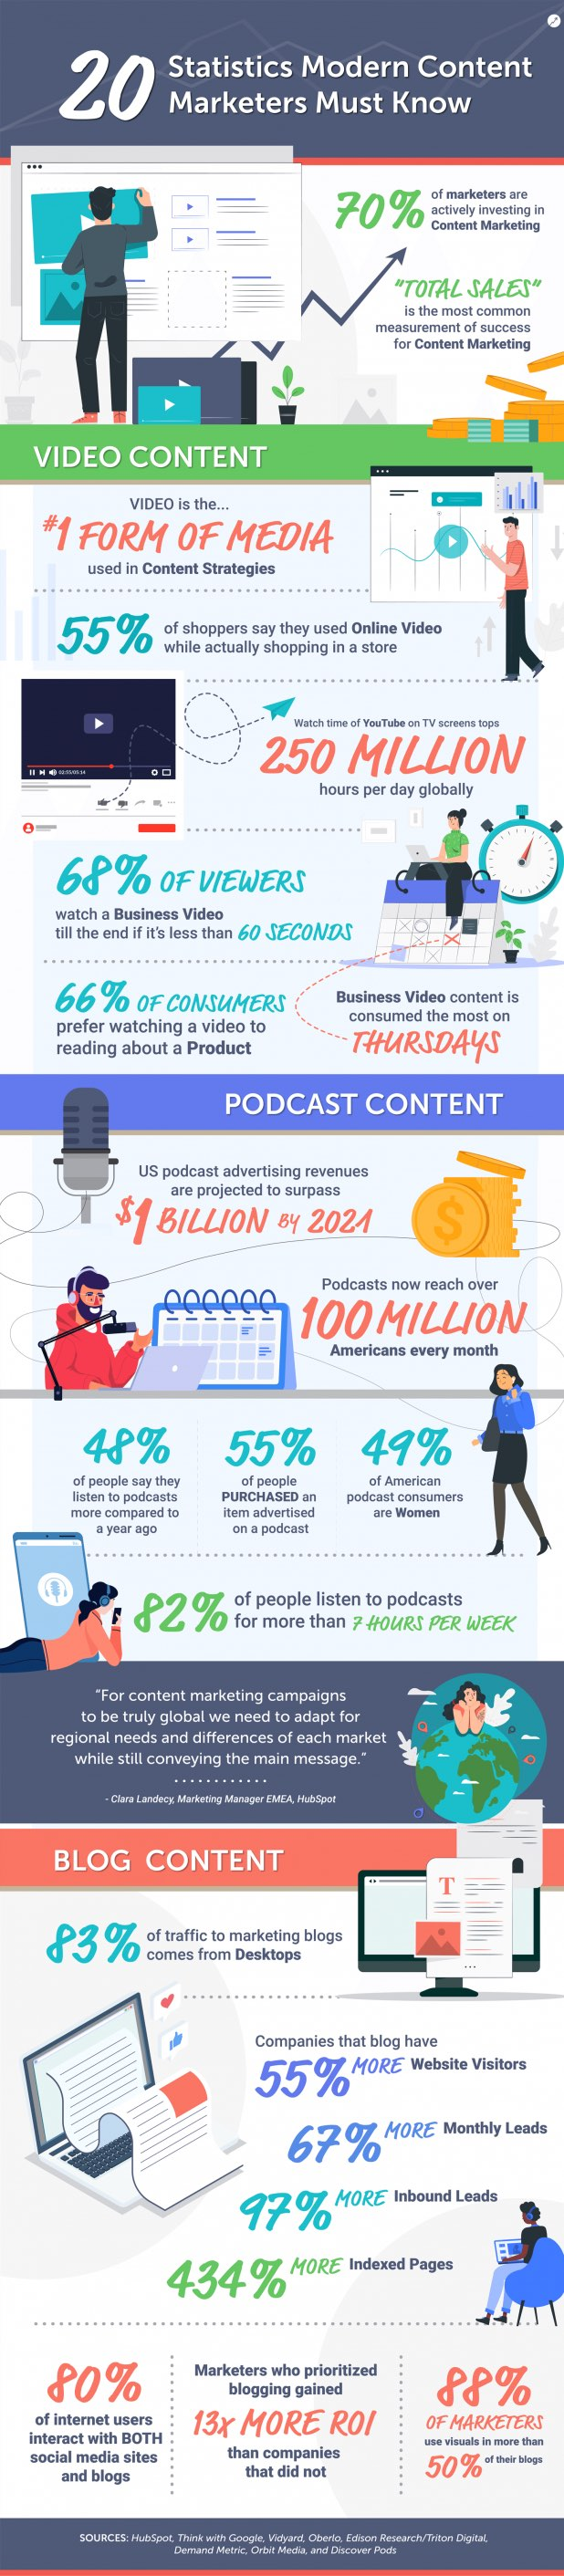 20 content marking statistics marketers should know infographic